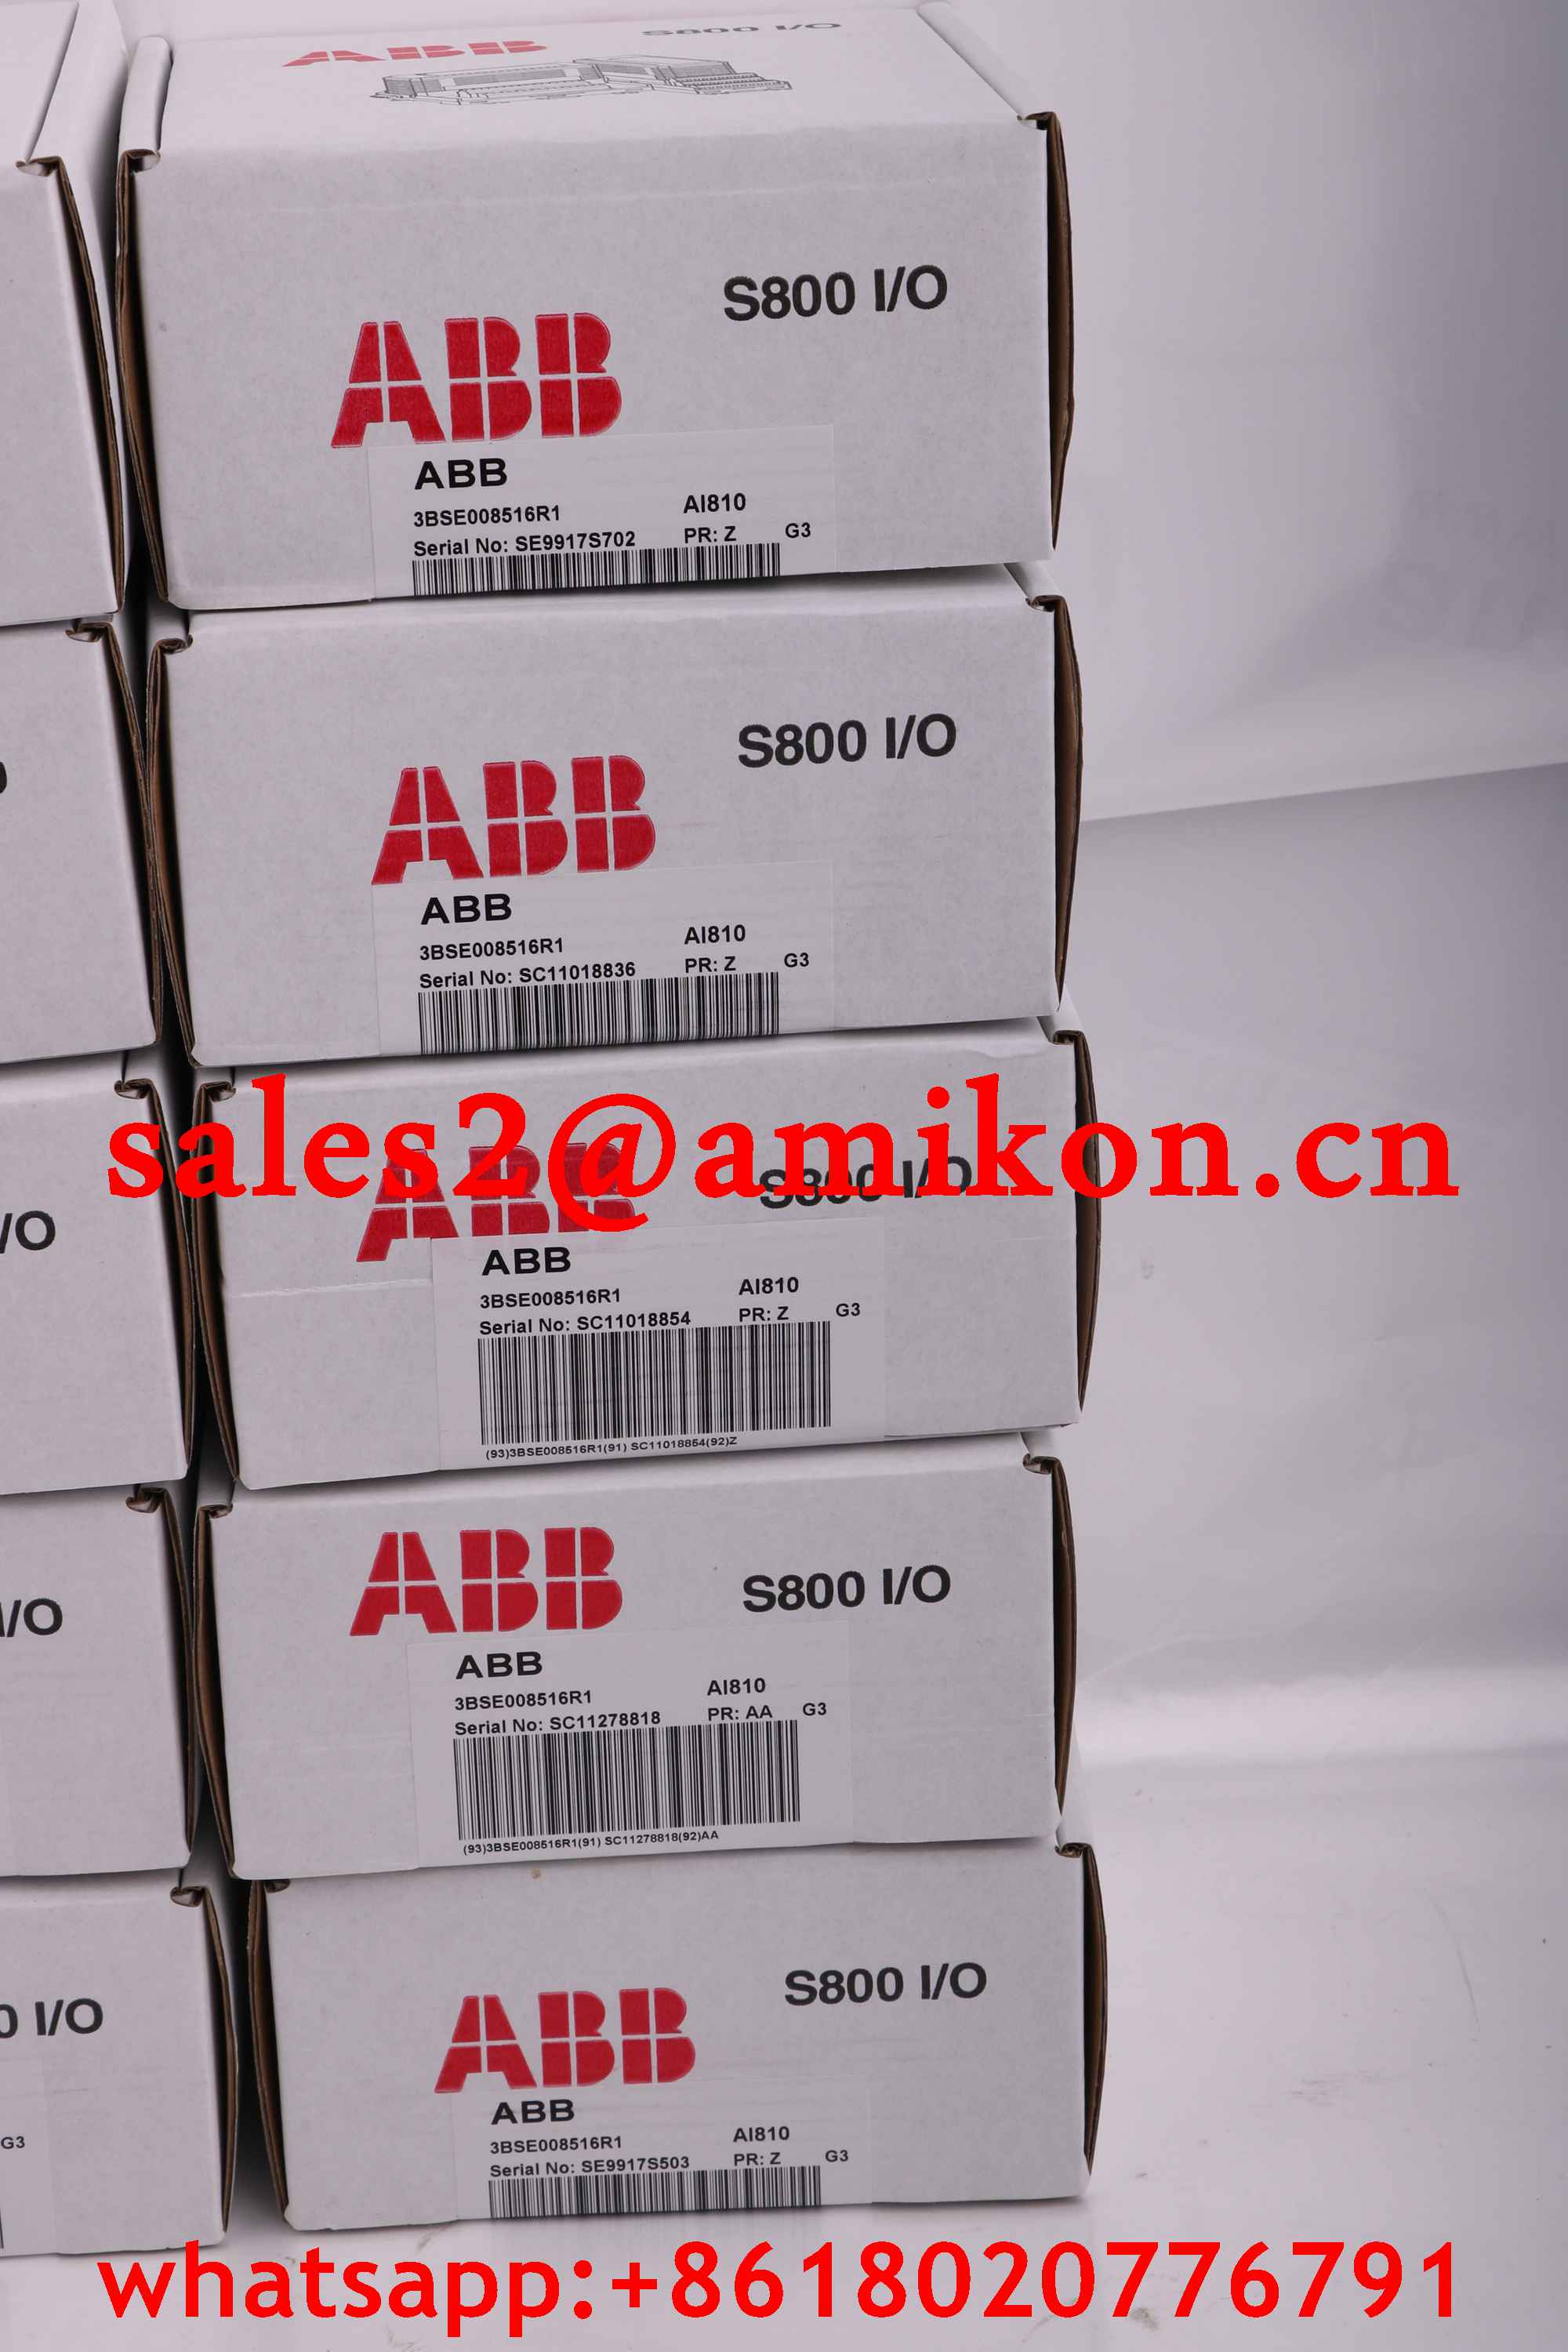 900056 1Gb SD-card S2 DDR ABB | Robot spare parts | PLC DCS Parts T/T 100% New In stock